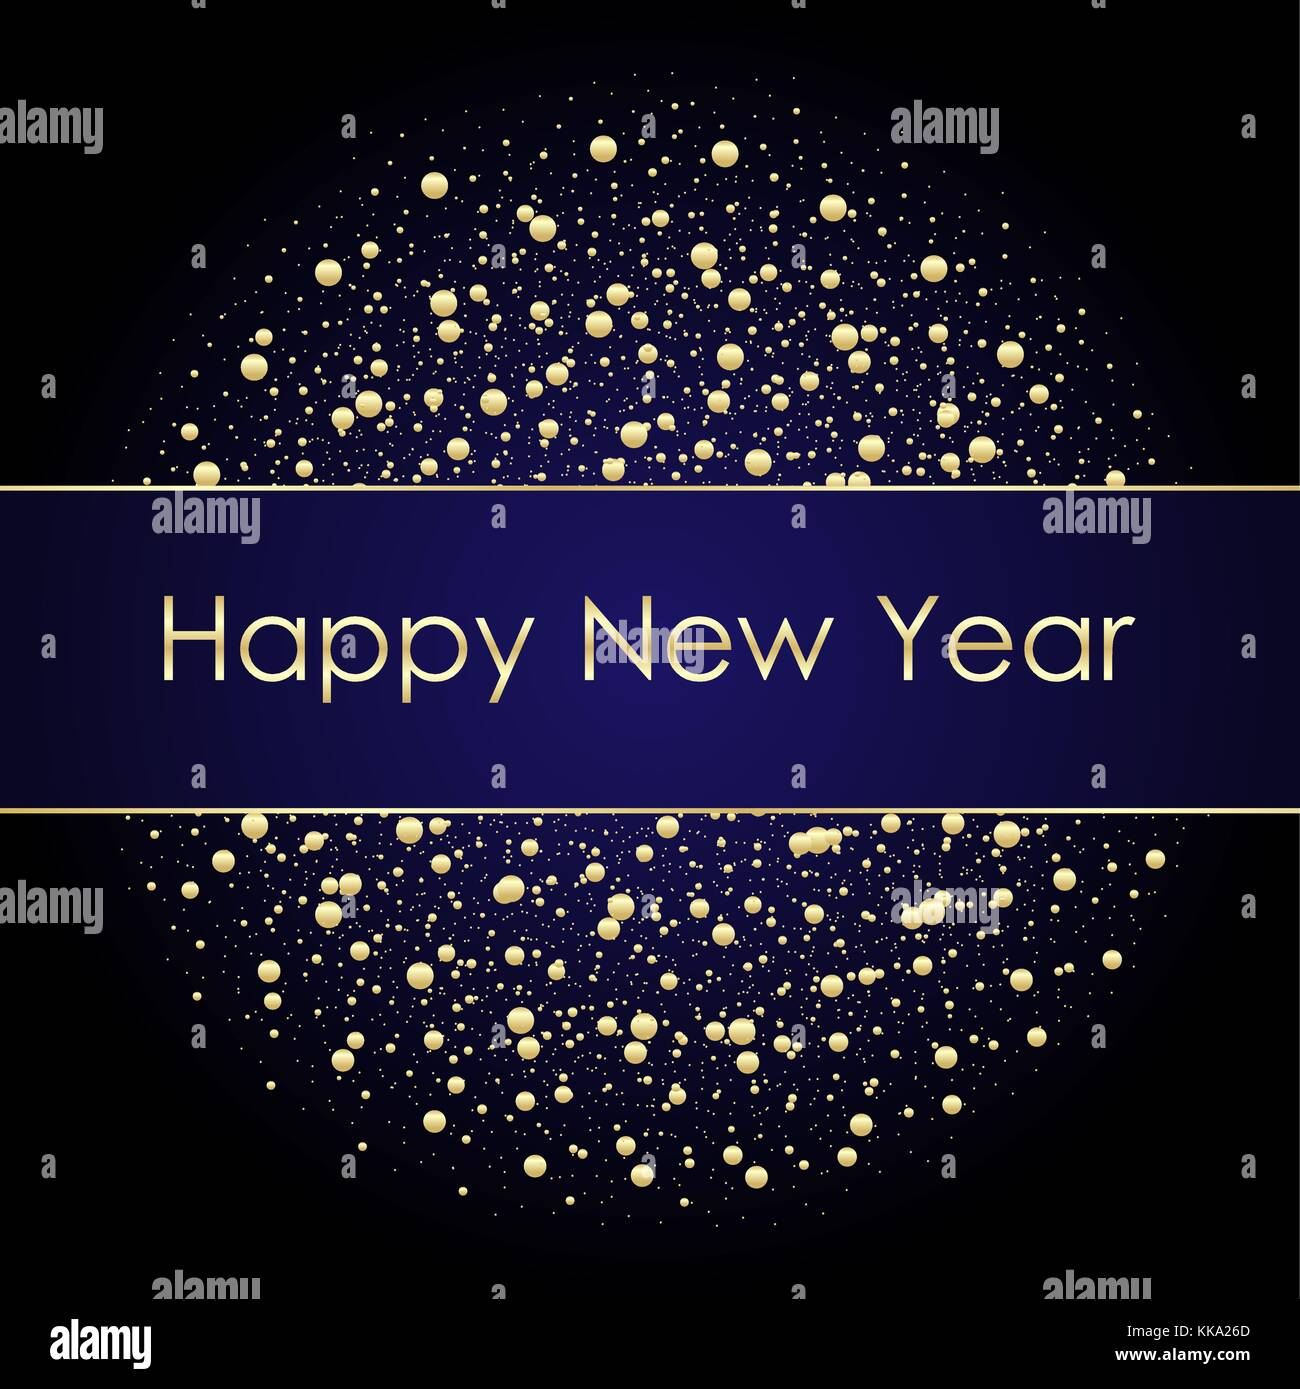 vector 2018 new year black background with gold glitter confetti splatter texture festive premium design template for holiday greeting card invitation